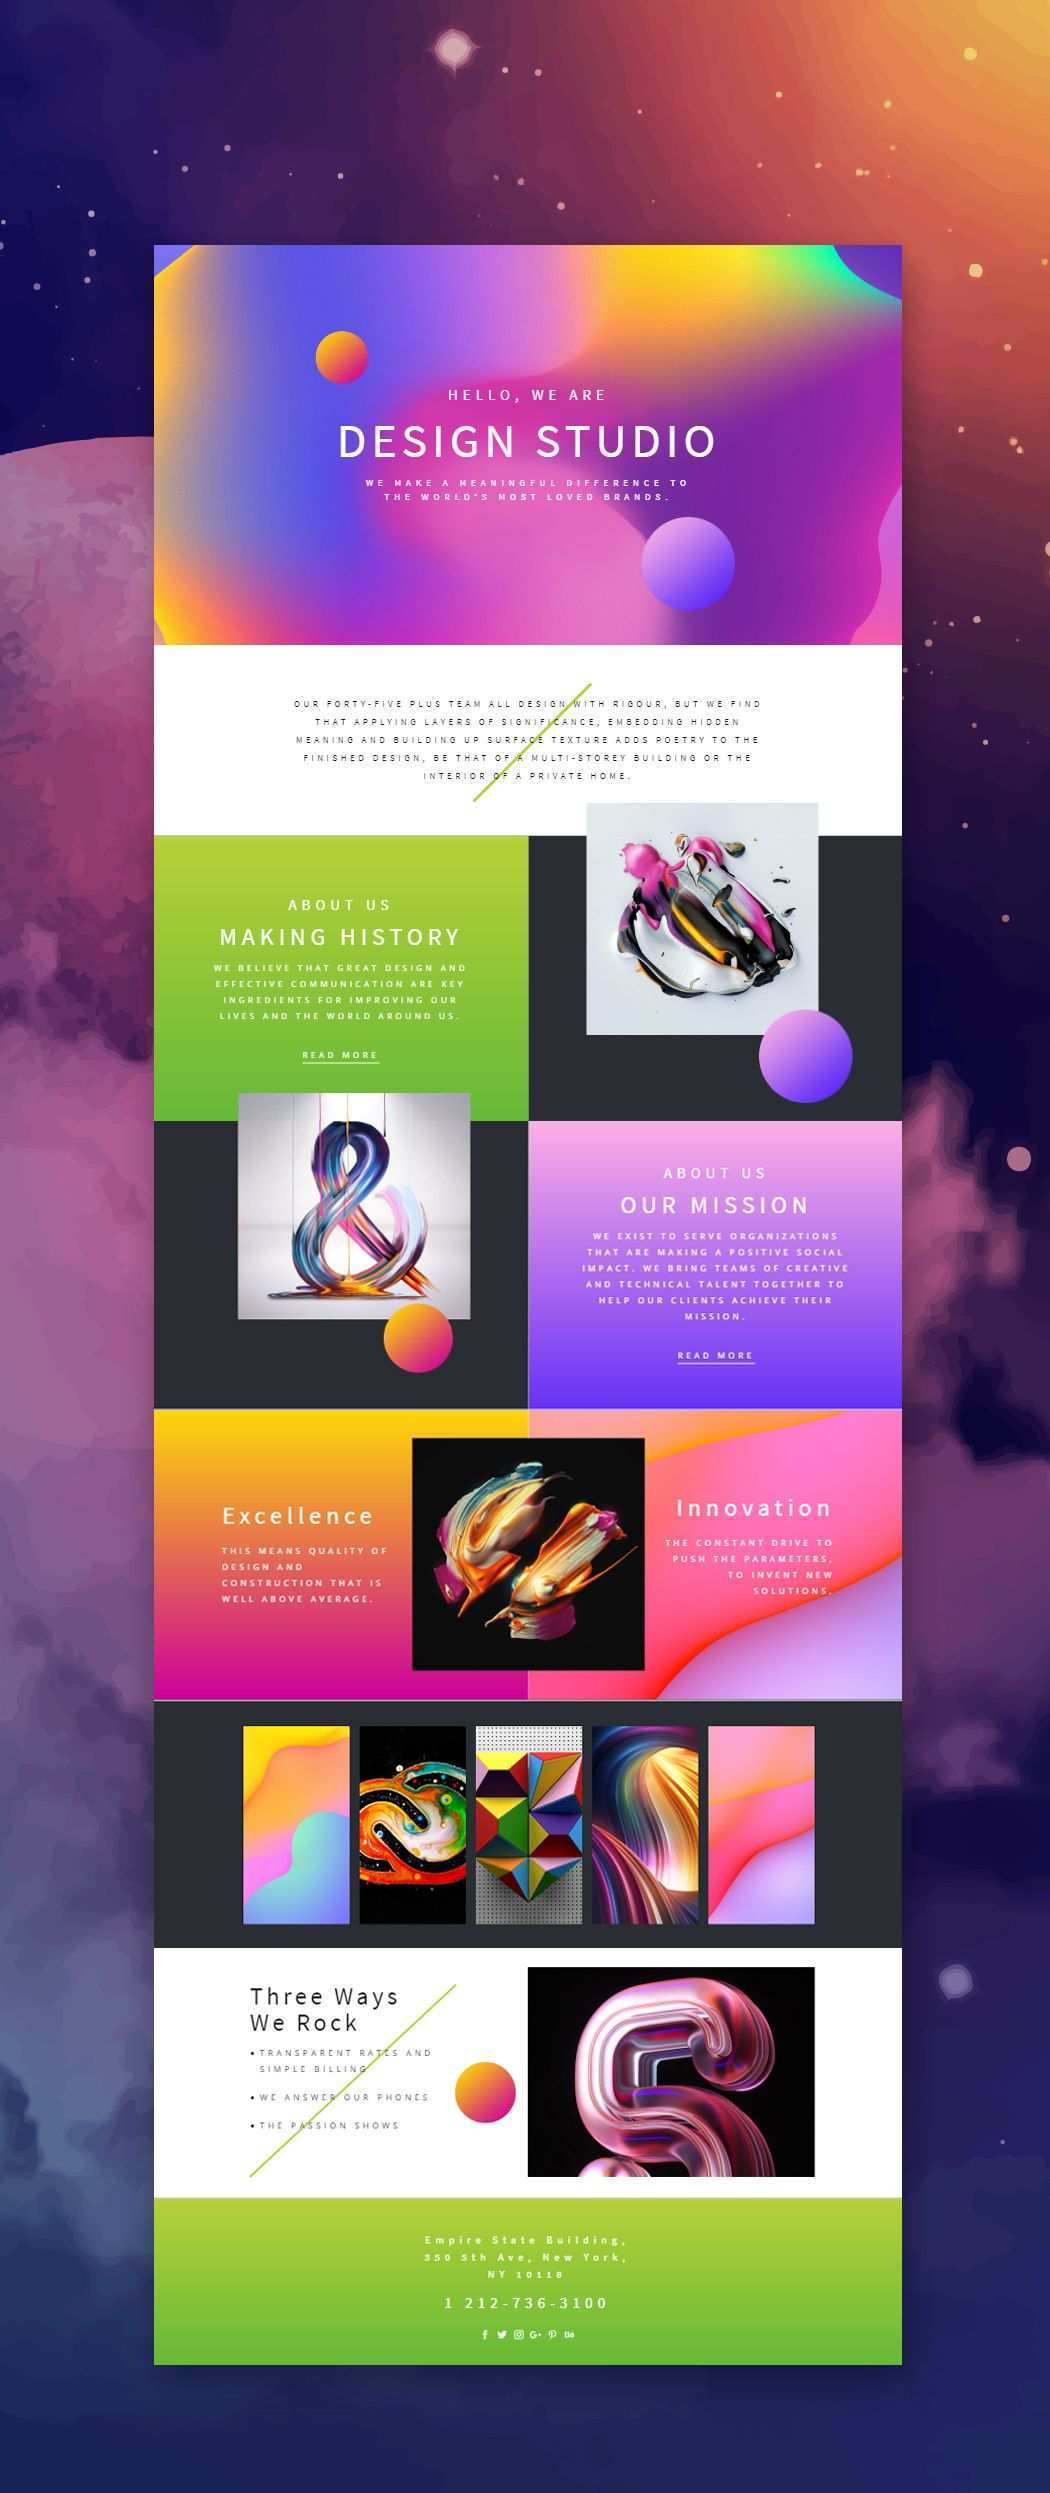 Trendy Design Studio Web Template Click And Start Edit This Web Template Wordpress Theme And Joomla Templa Portfolio Web Design Web Design Web Design Quotes